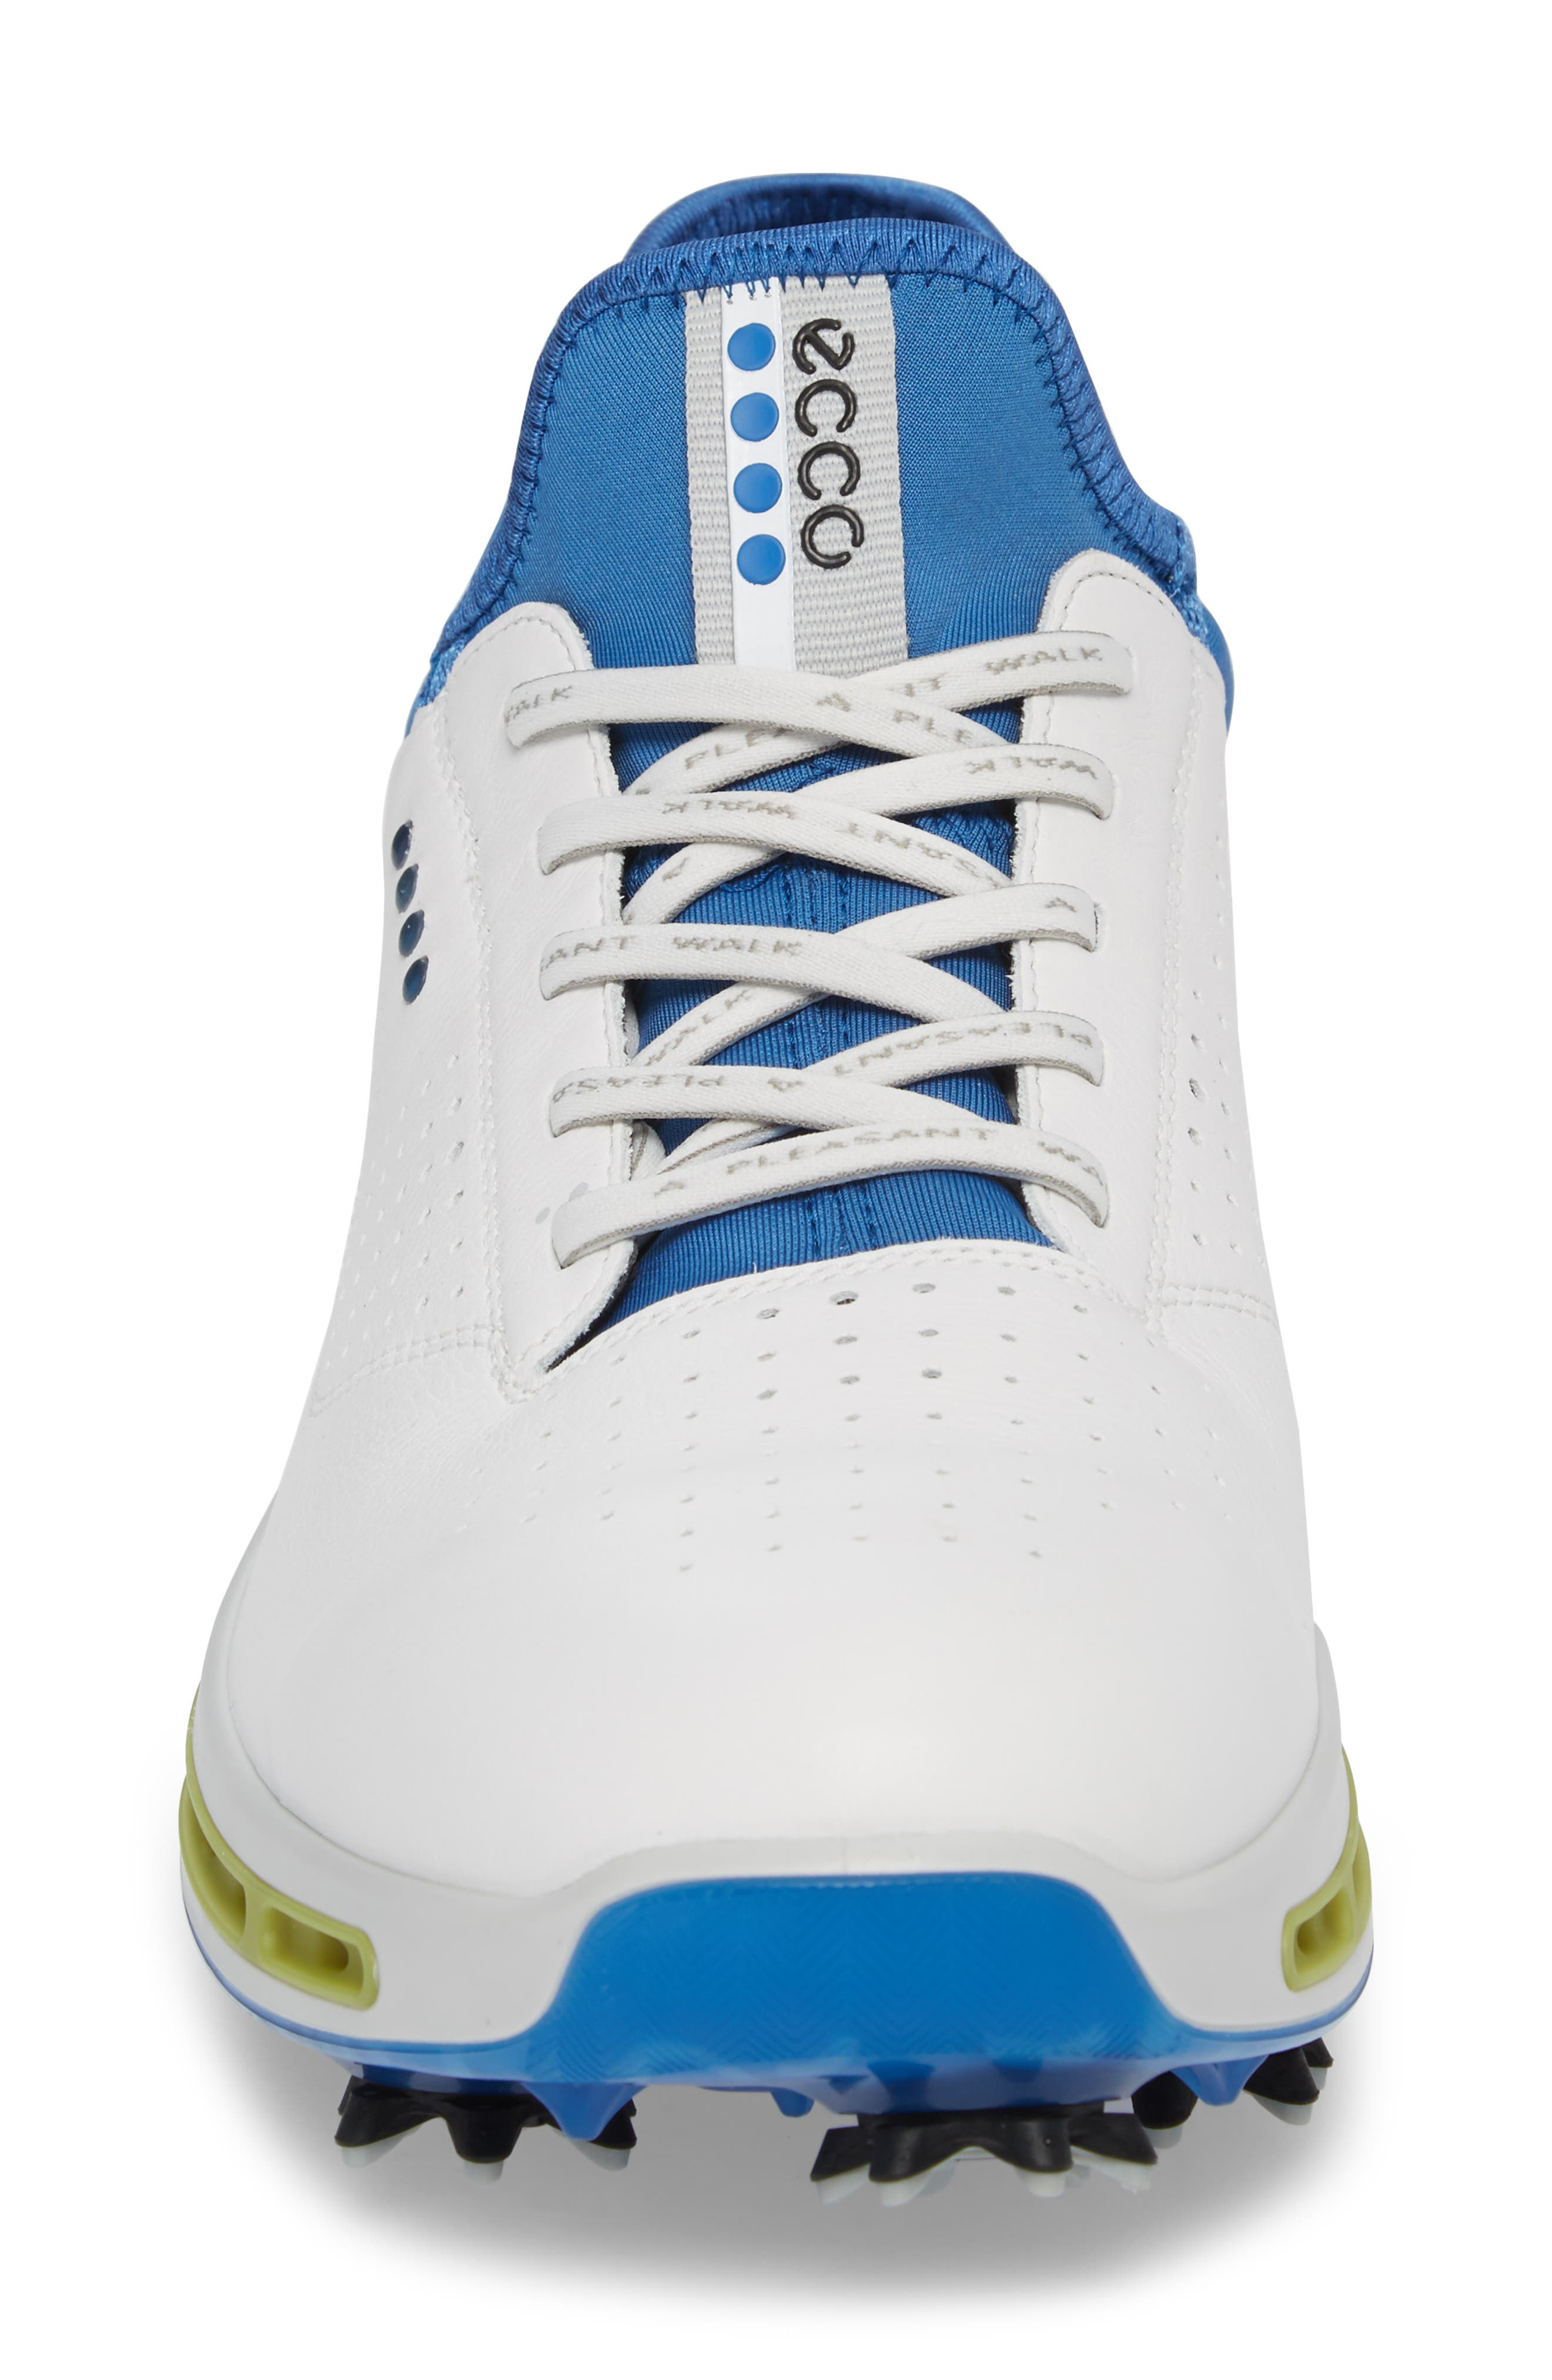 Cool 18 Gore-Tex Golf Shoe,                             Alternate thumbnail 4, color,                             White Leather